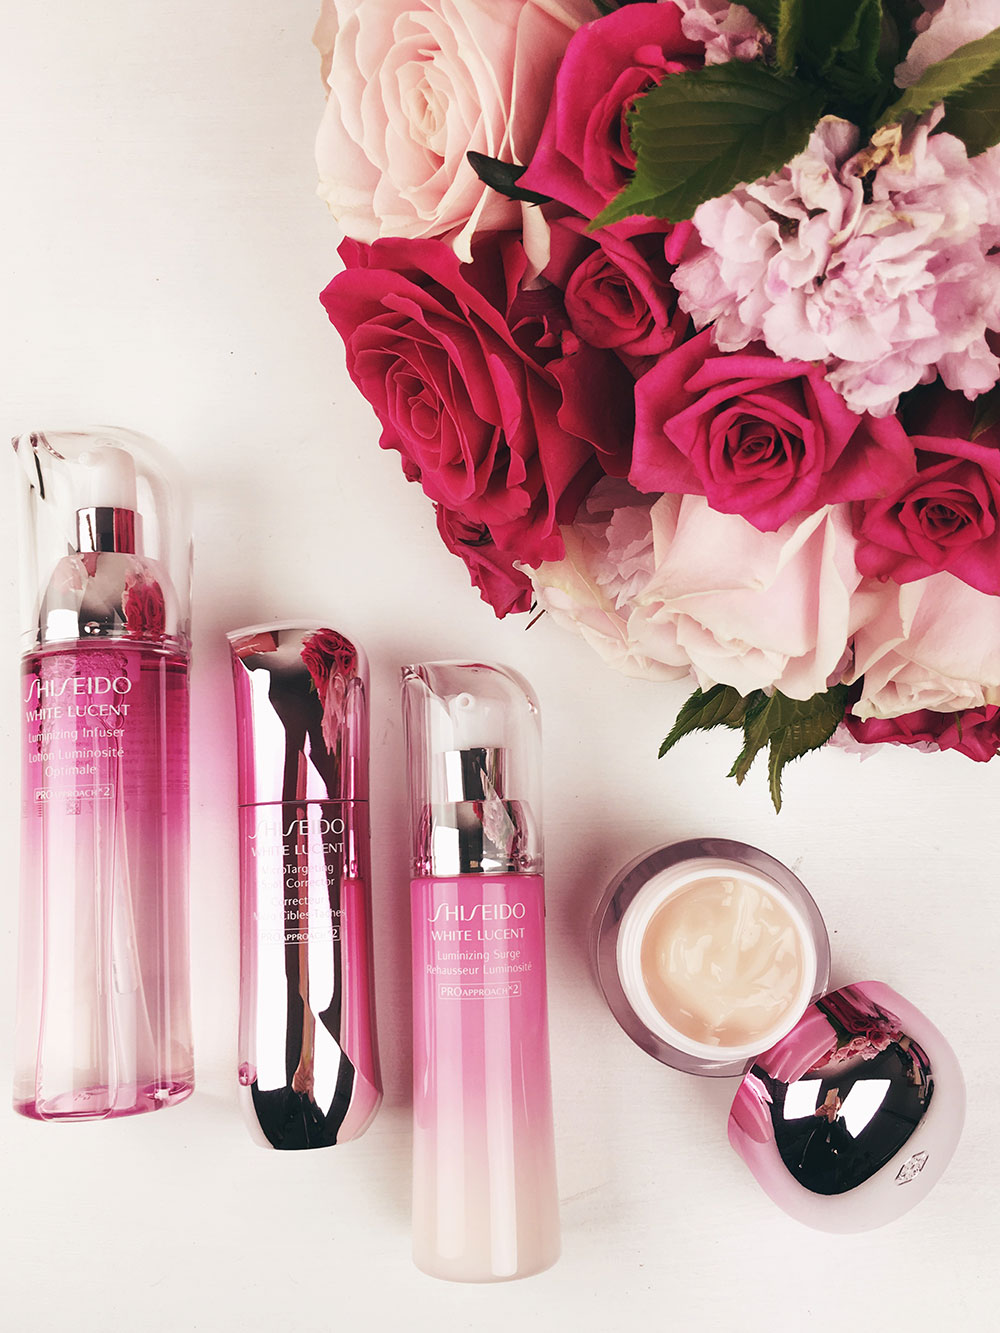 shiseido-white-lucent-review.jpg